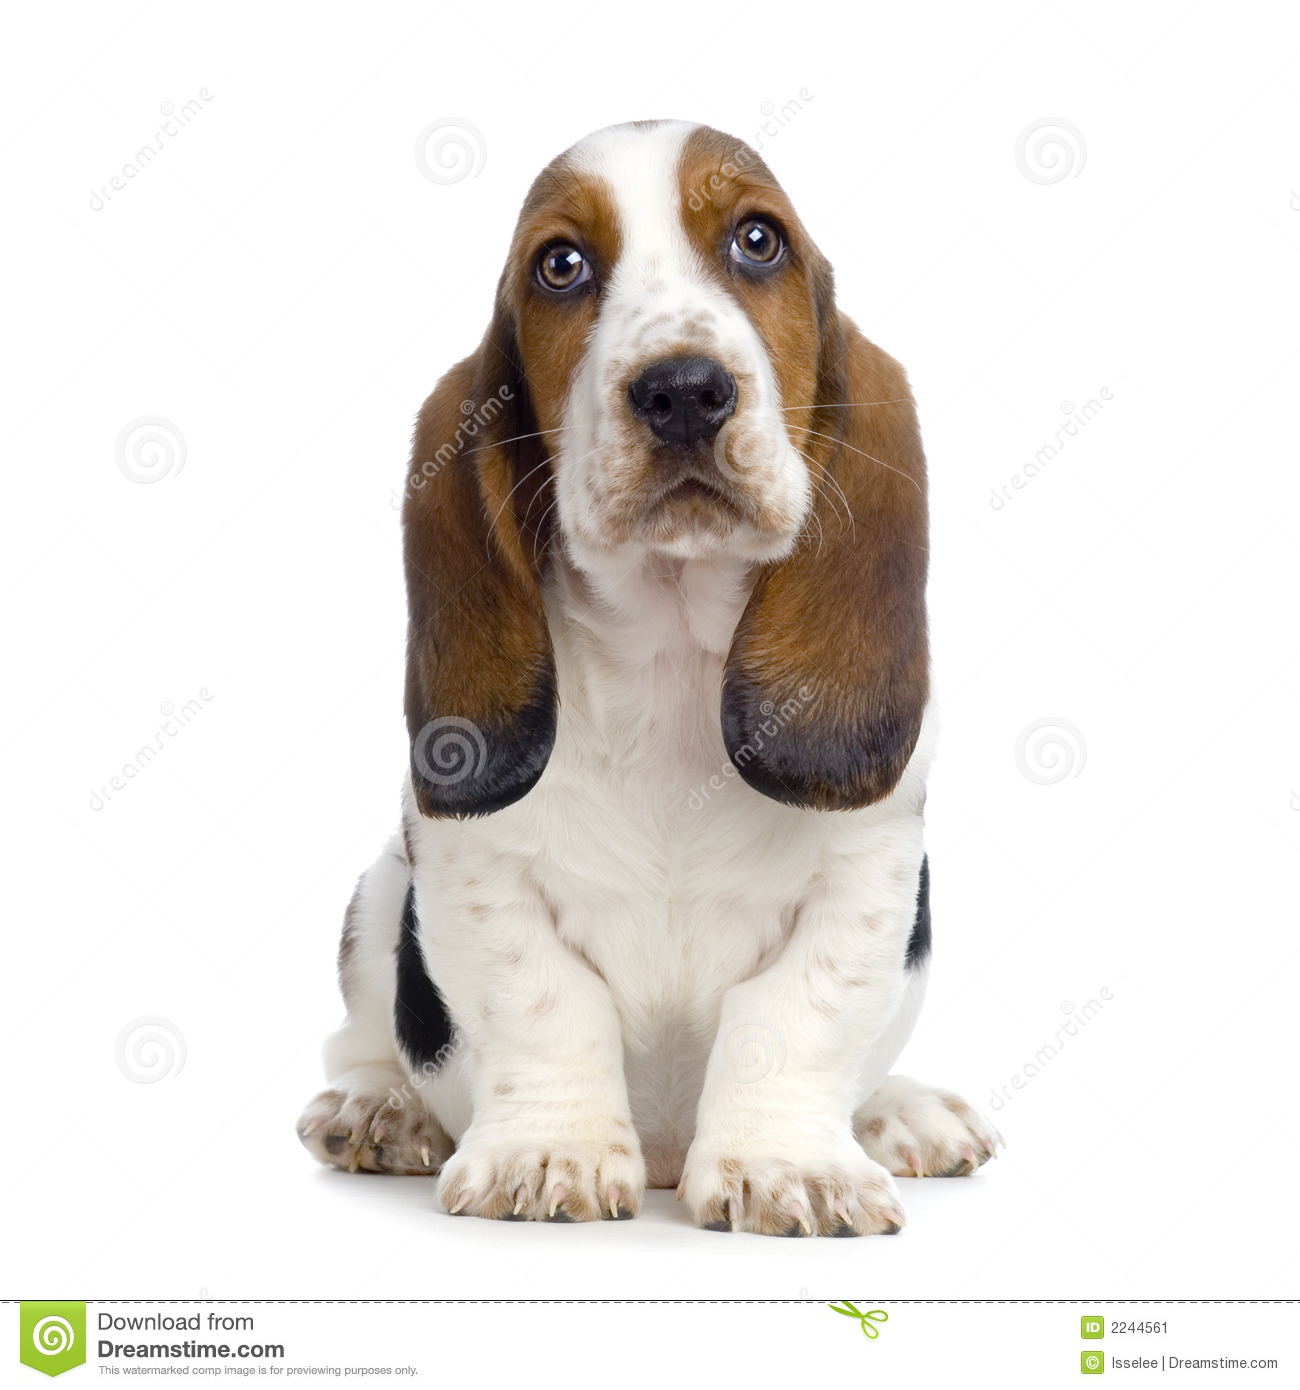 More similar stock images of ` Basset Hound Puppy ` White Parson Russell Terrier